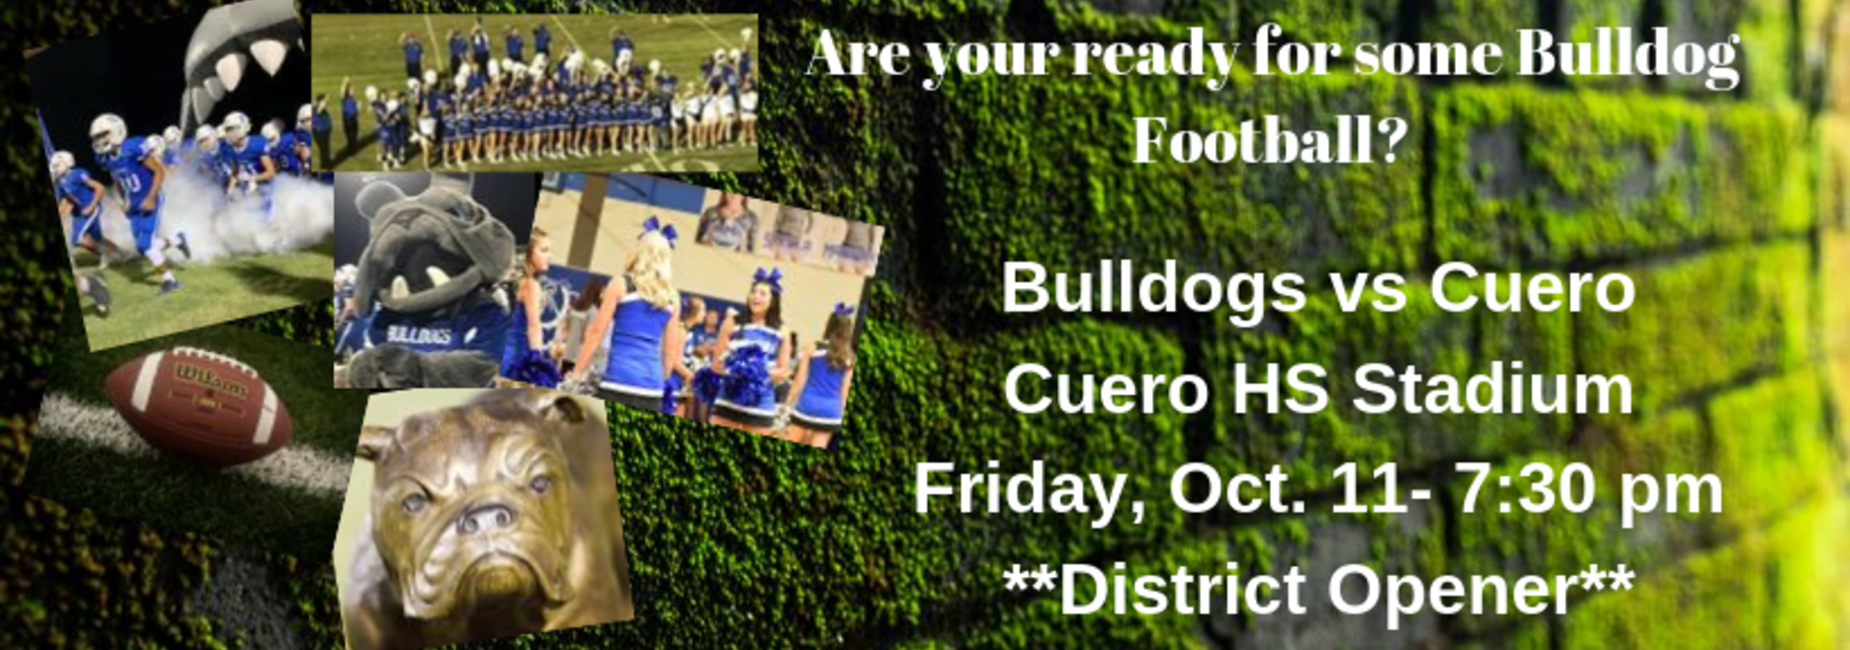 Football vs Cuero